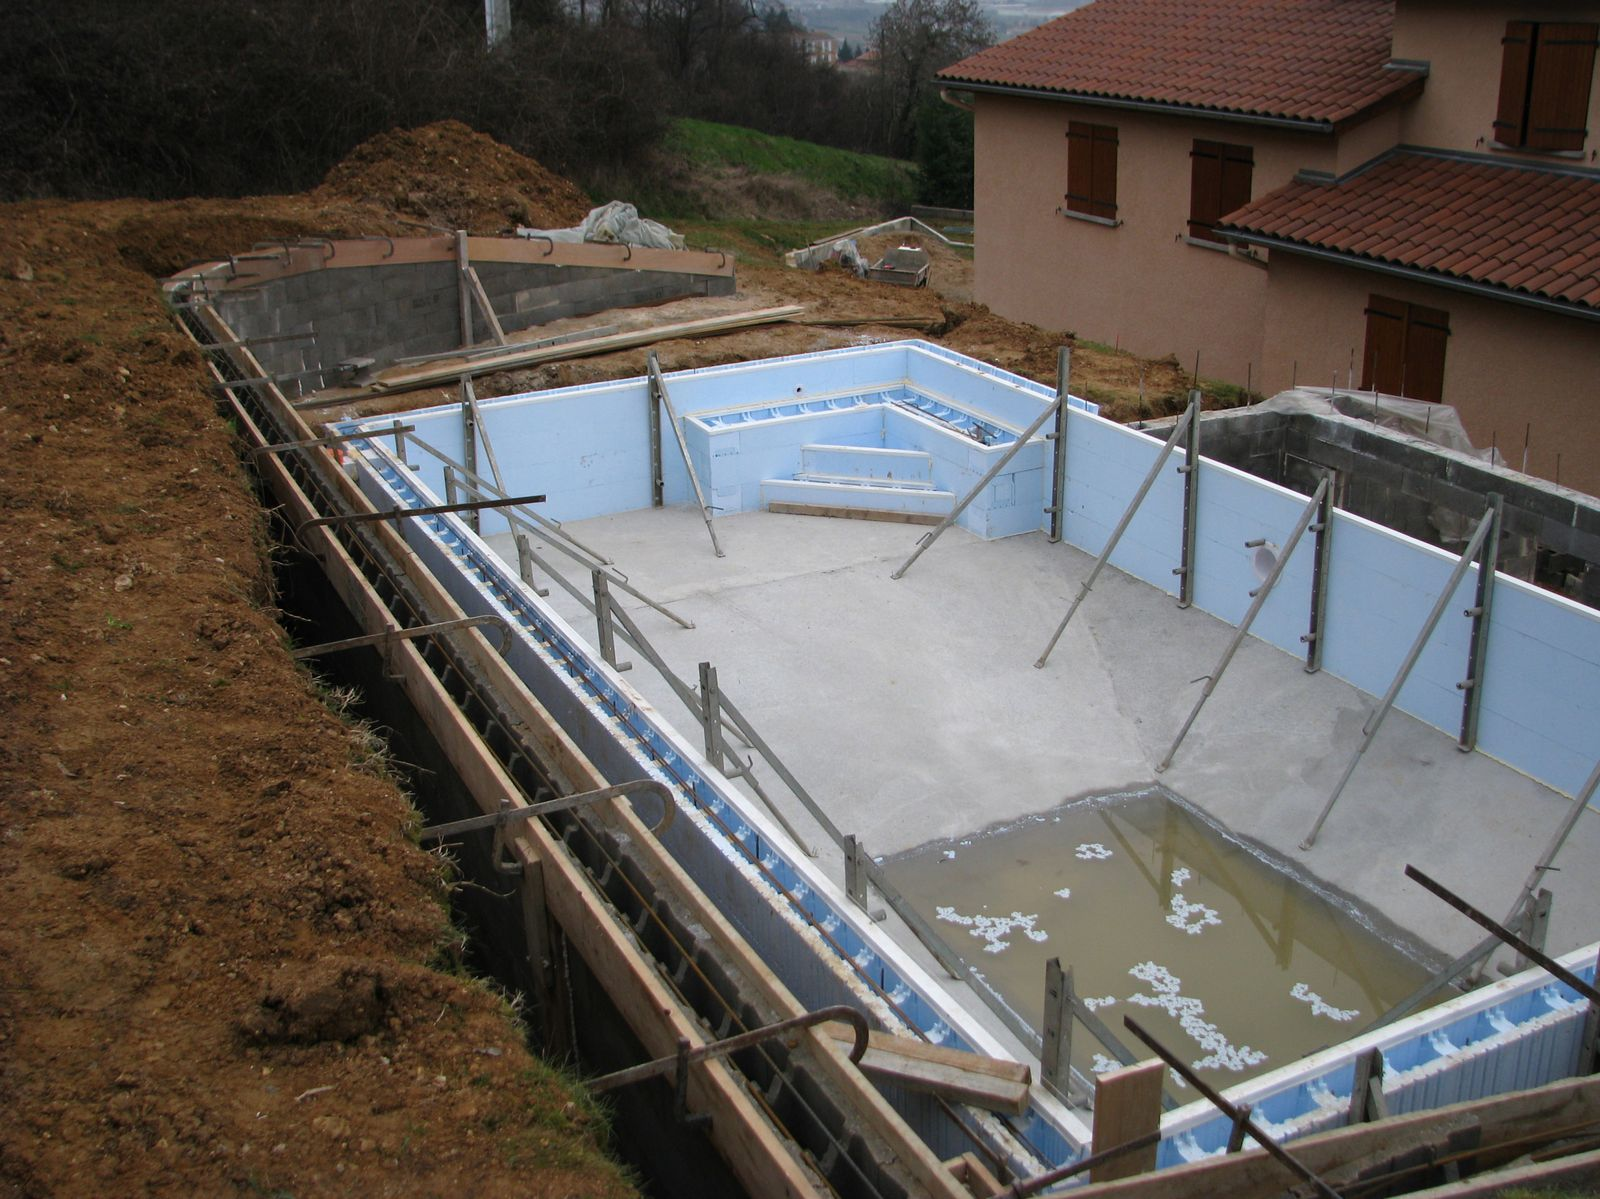 Le mur de sout nement l 39 arri re de la piscine le blog for Construction piscine sur terrain non constructible